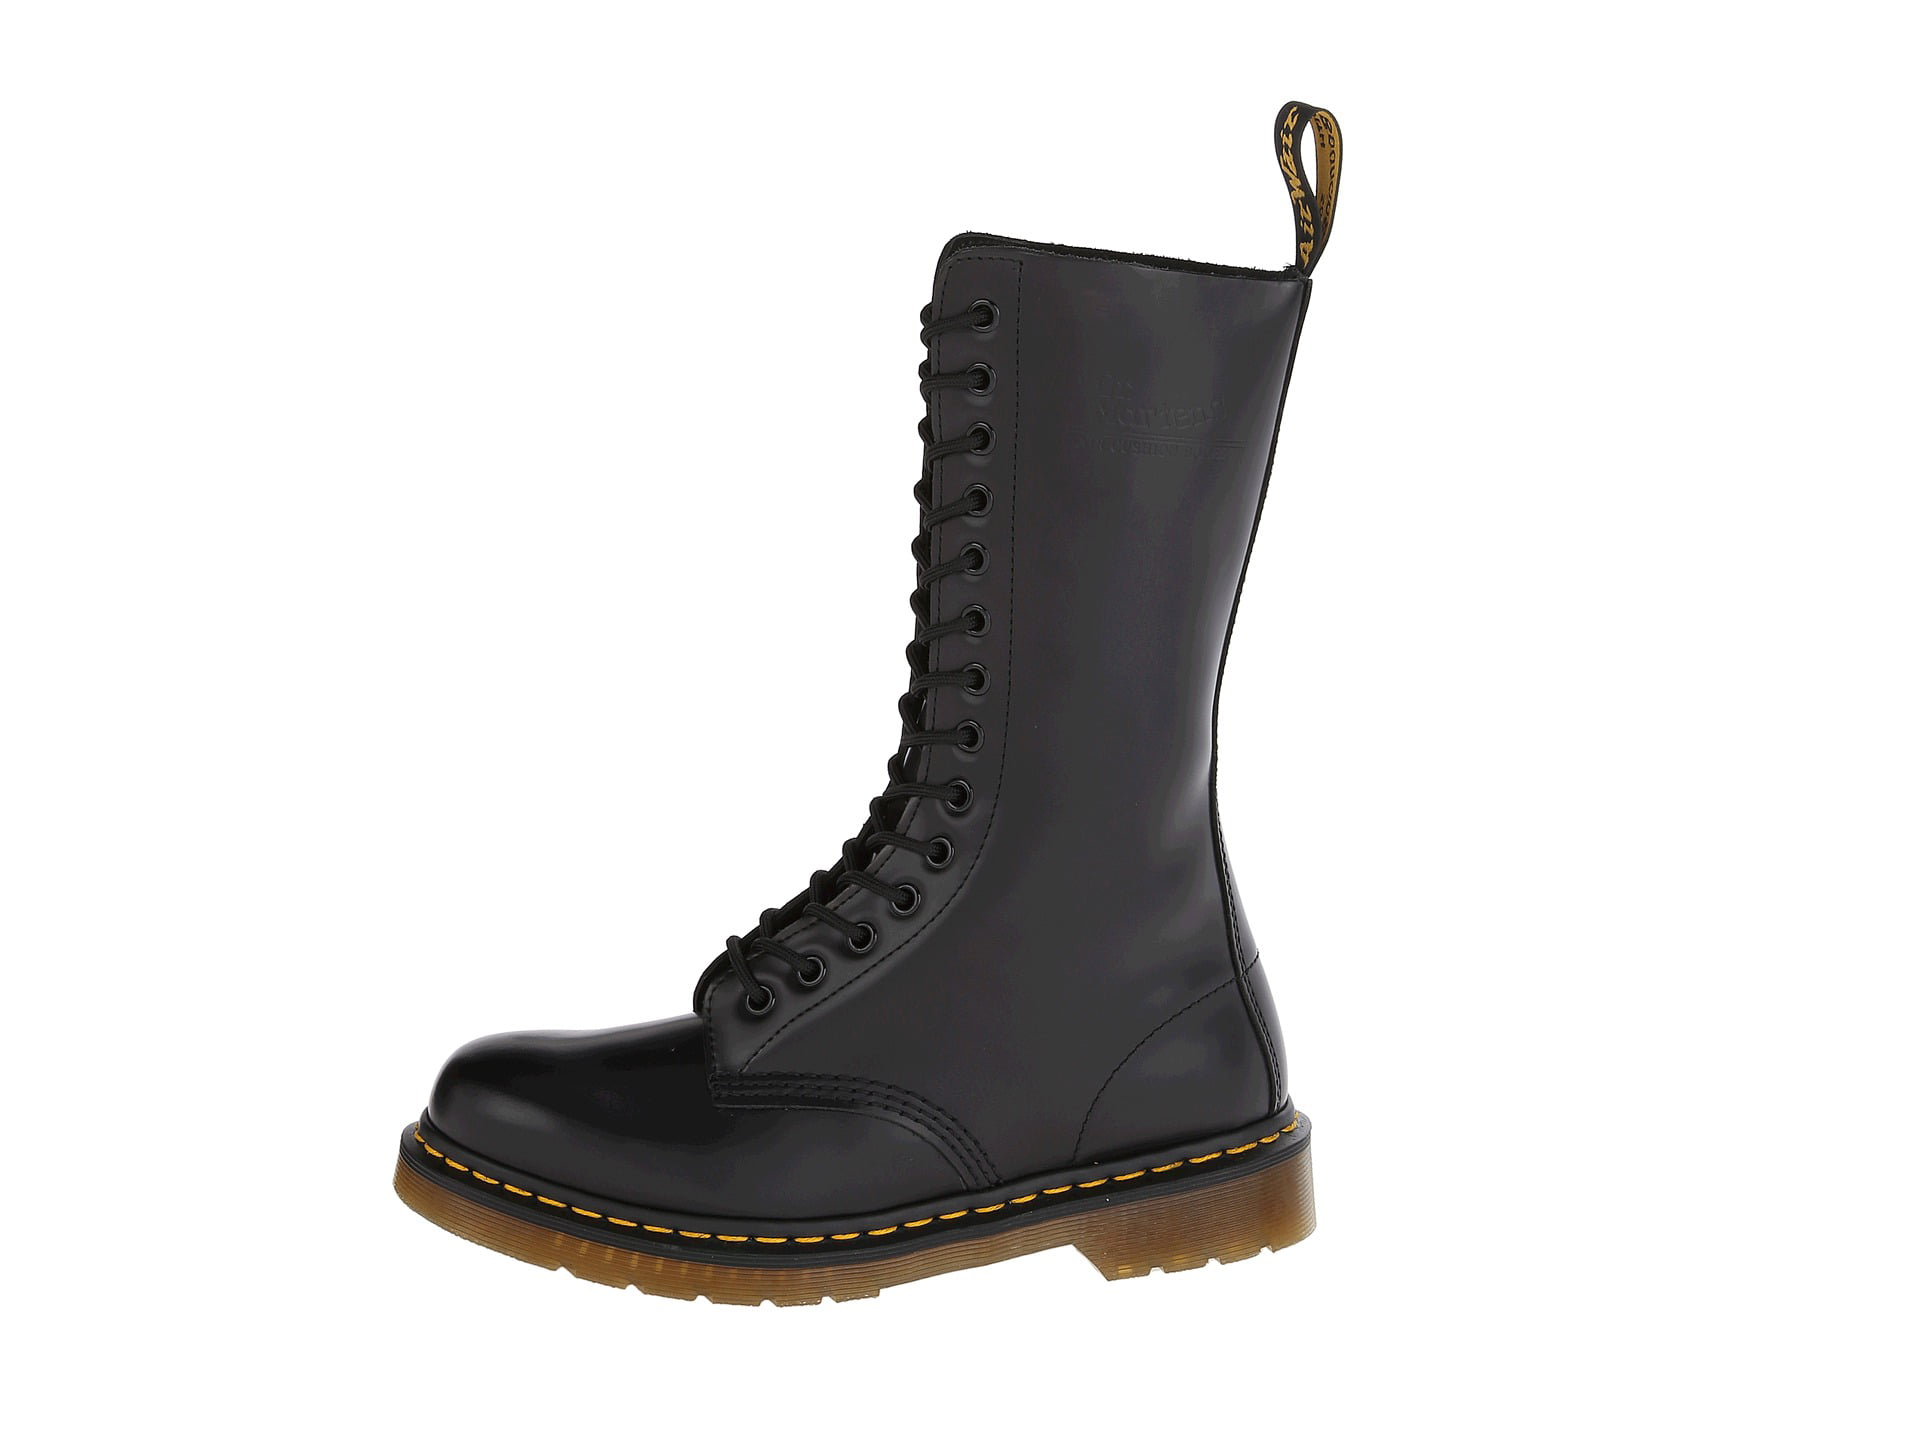 Dr. Martens 1914 Original 14 Eye Casual Boot Shoe Womens by Dr. Martens